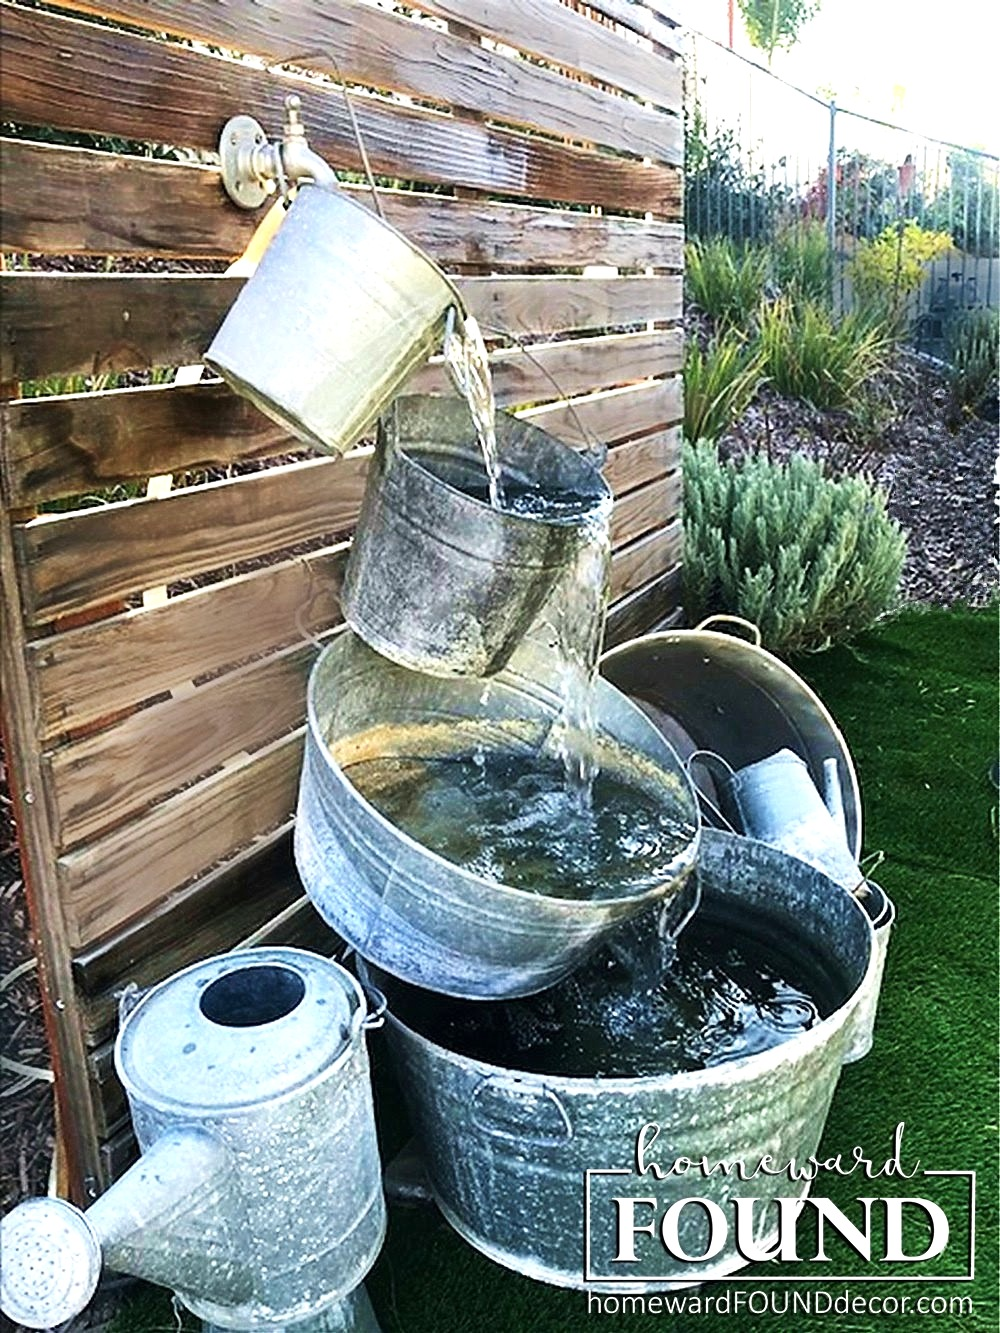 Galvanized buckets water fountain by Homeward Found, featured on DIY Salvaged Junk Projects 516 on Funky Junk Interiors.